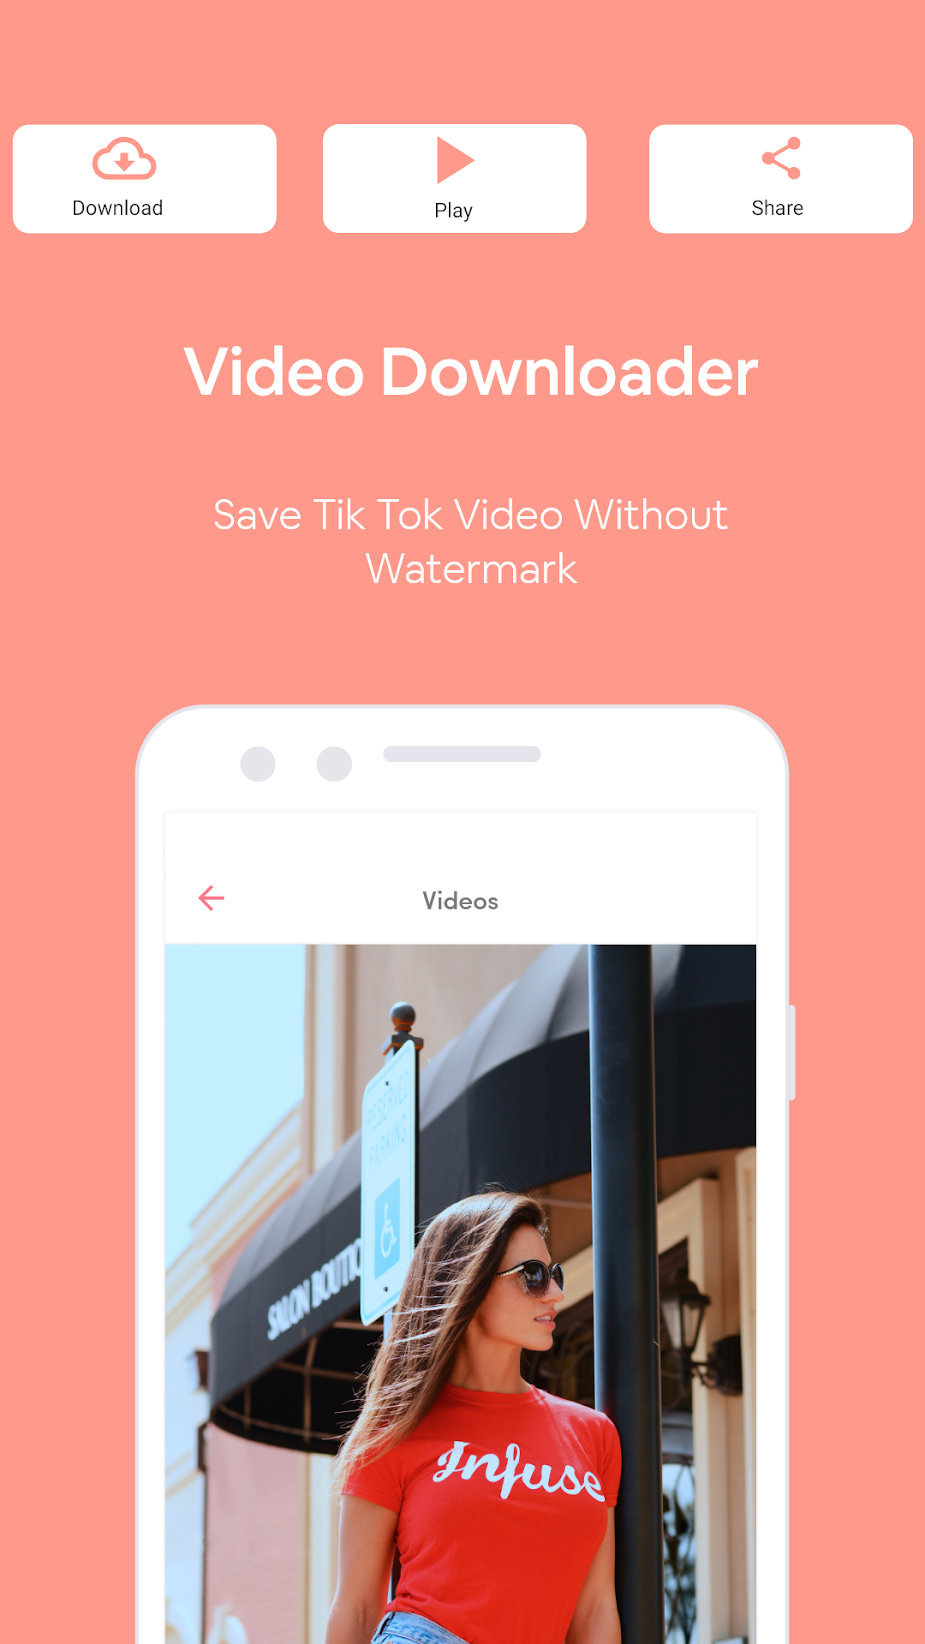 HD Video Saver - Tictoc Video Downloader